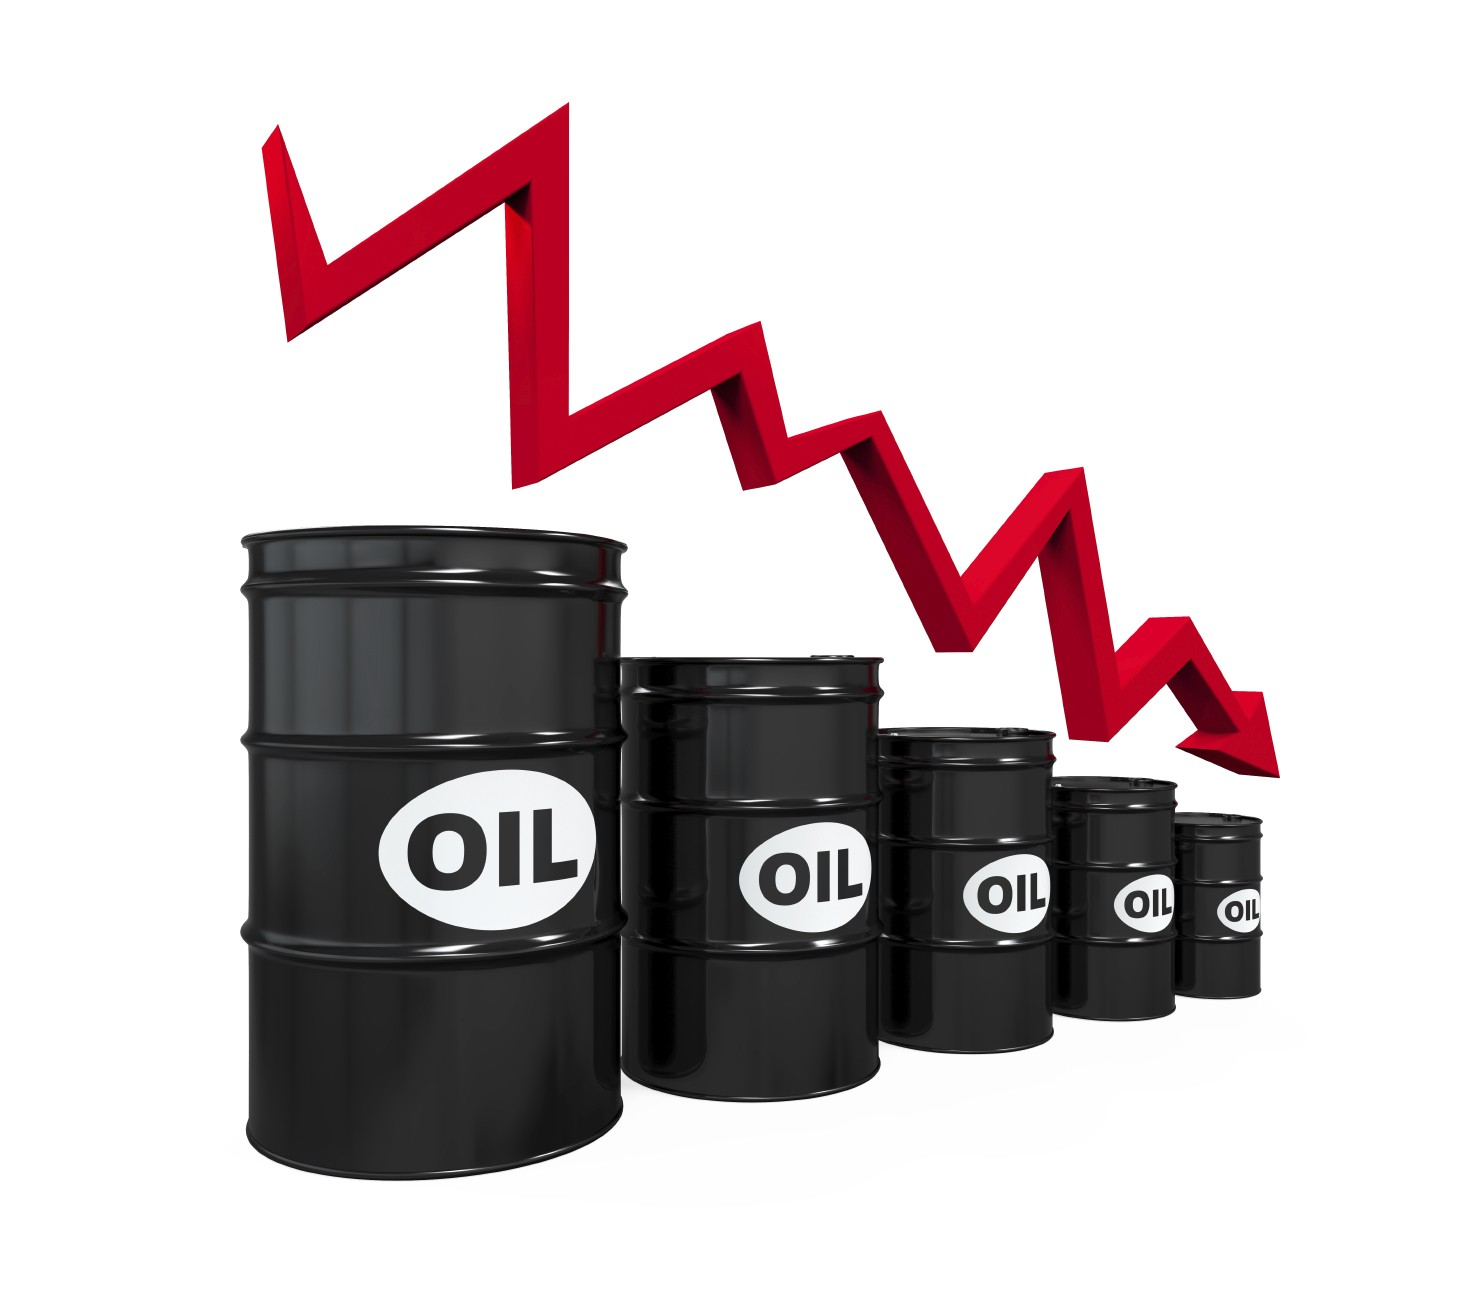 oil barrels with arrow